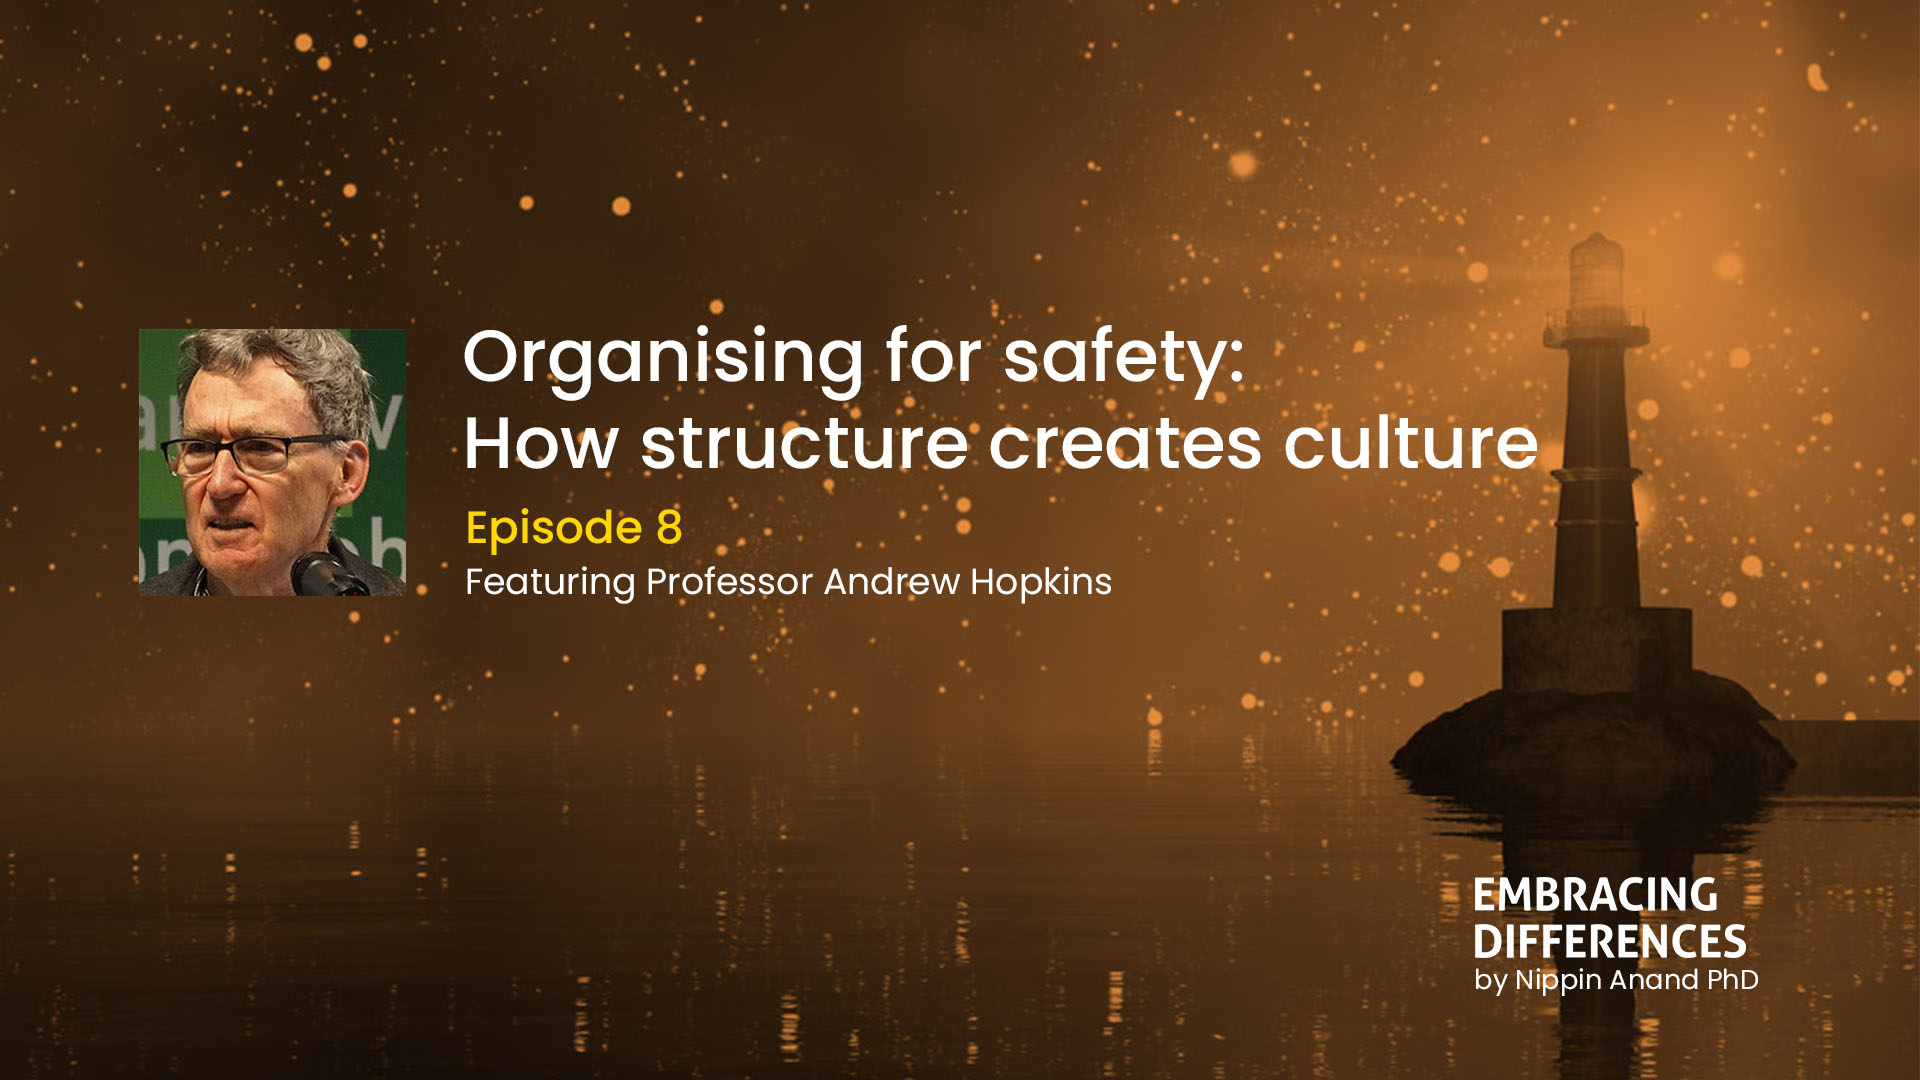 Organising for safety: How structure creates culture